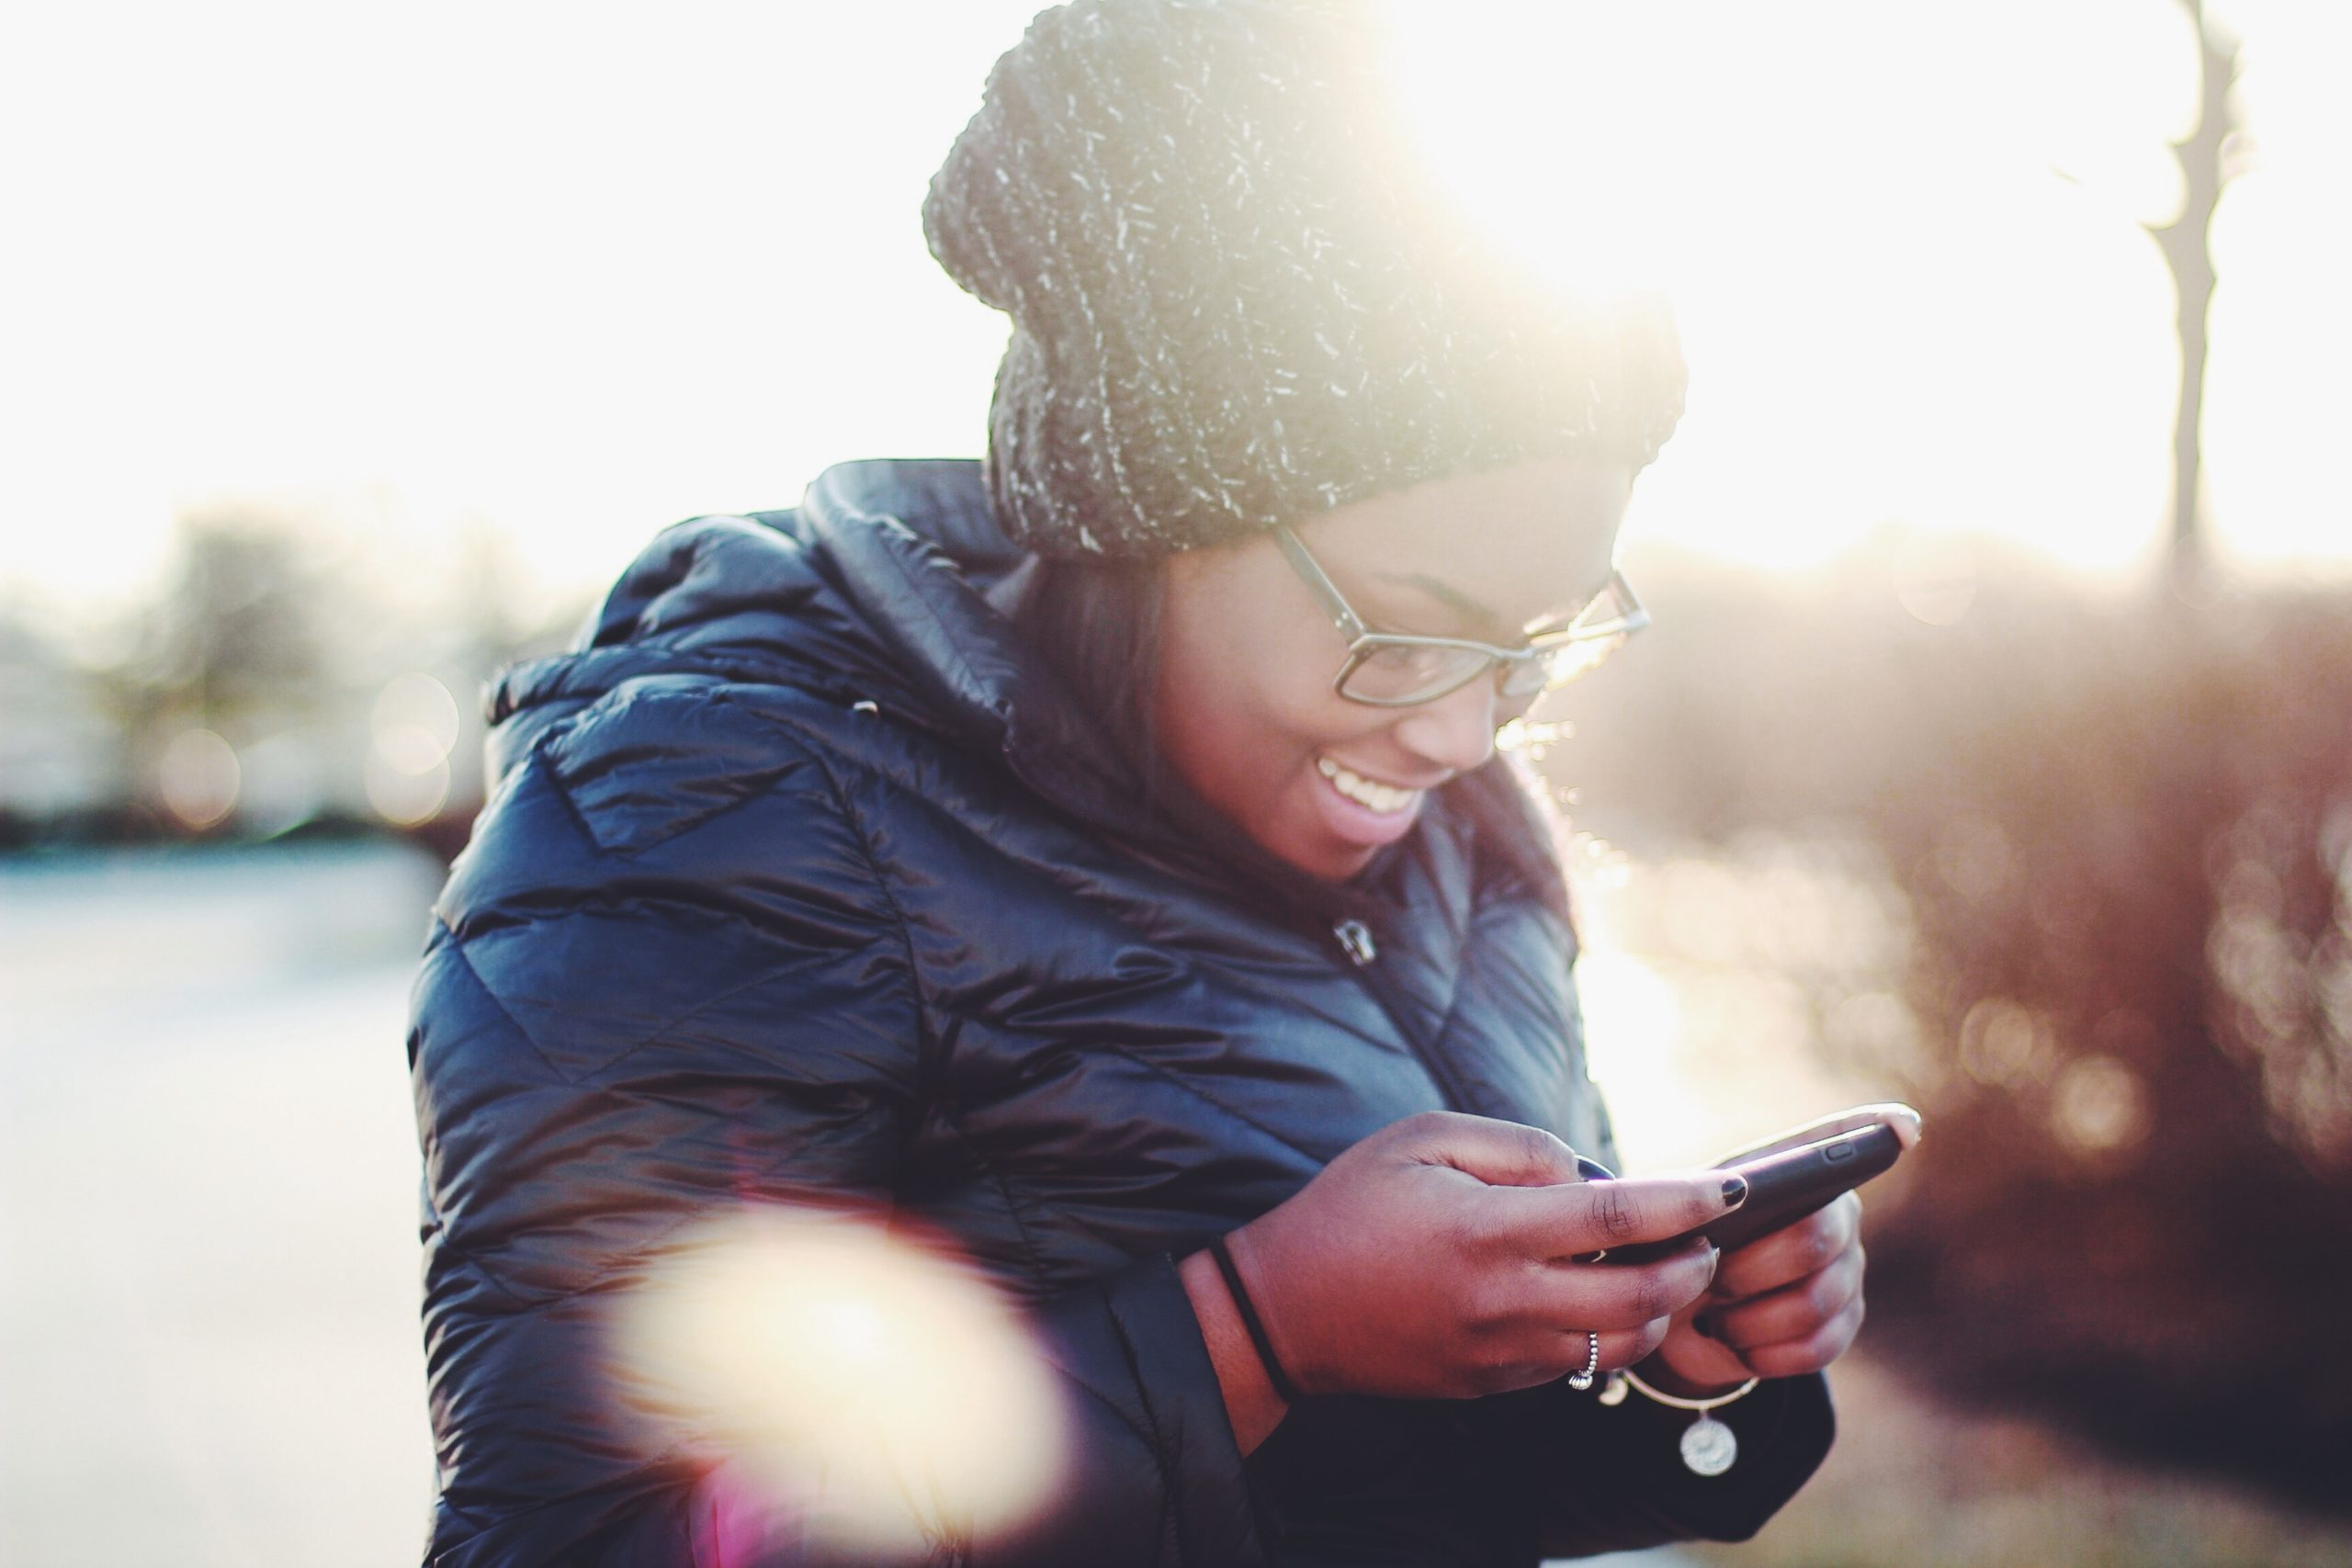 young woman smiling and looking down at her cellphone